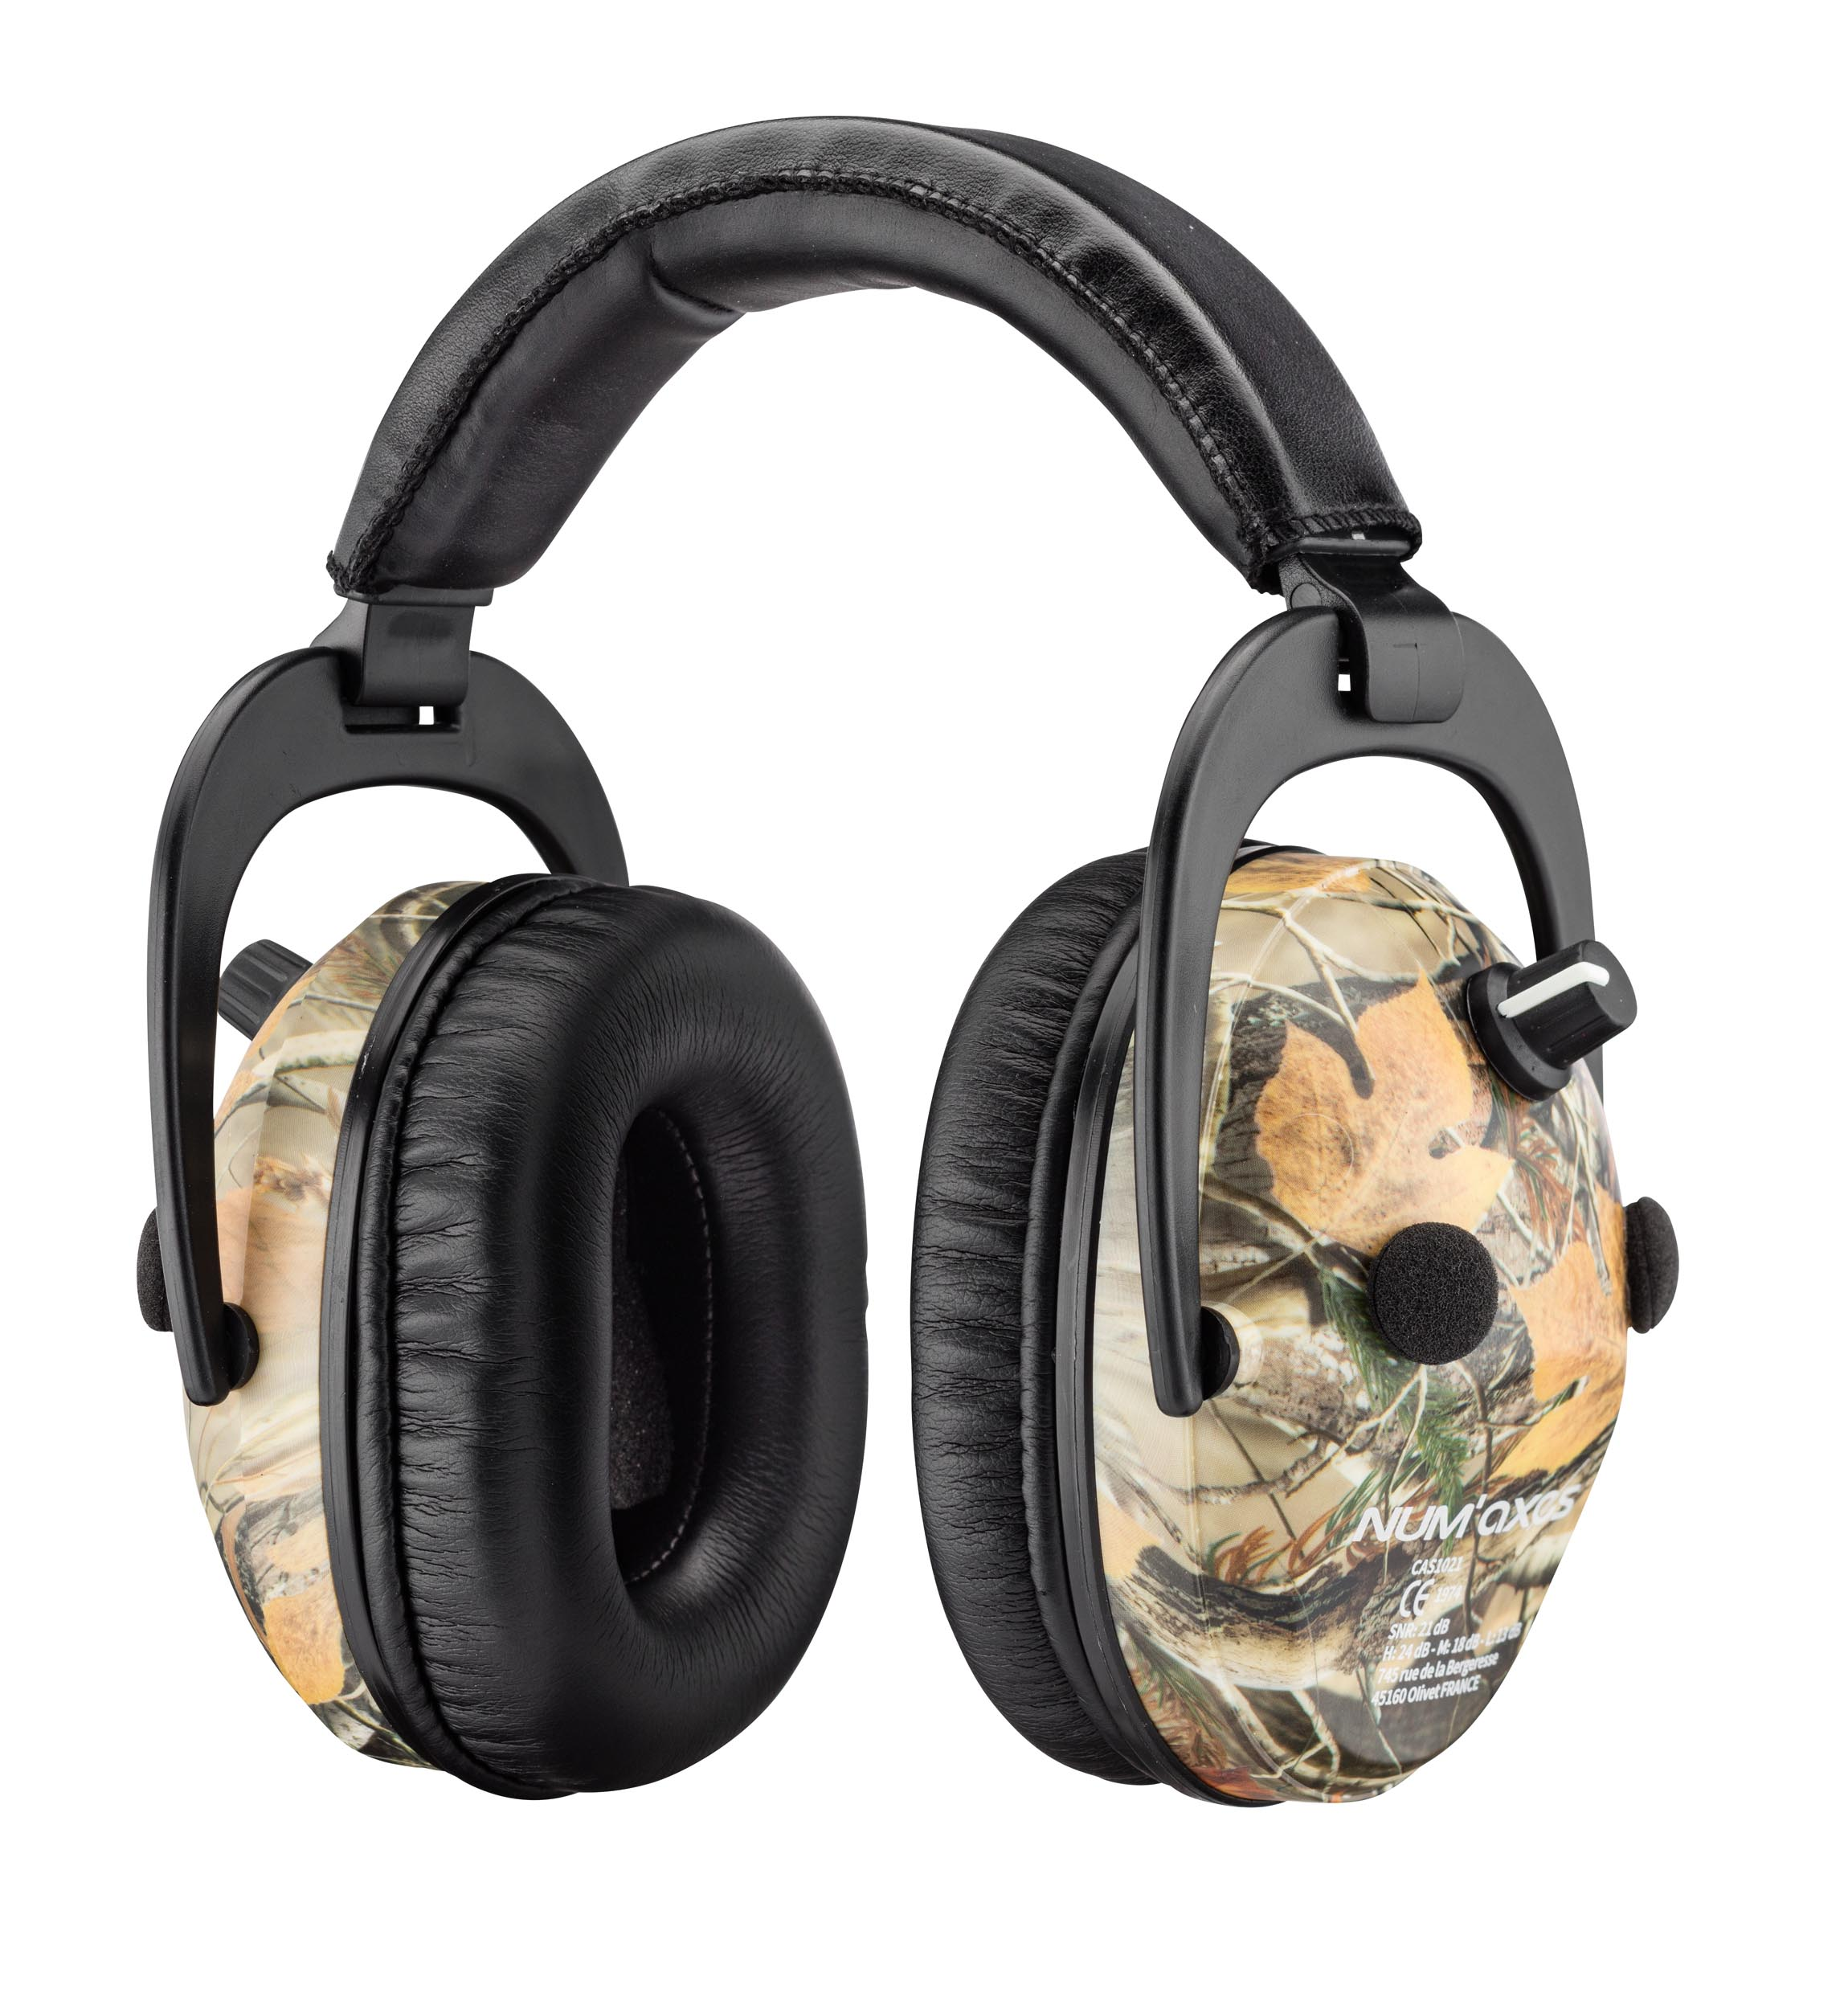 NUM117-2 Spika Hearing Protection Amplified Headphones - NUM117